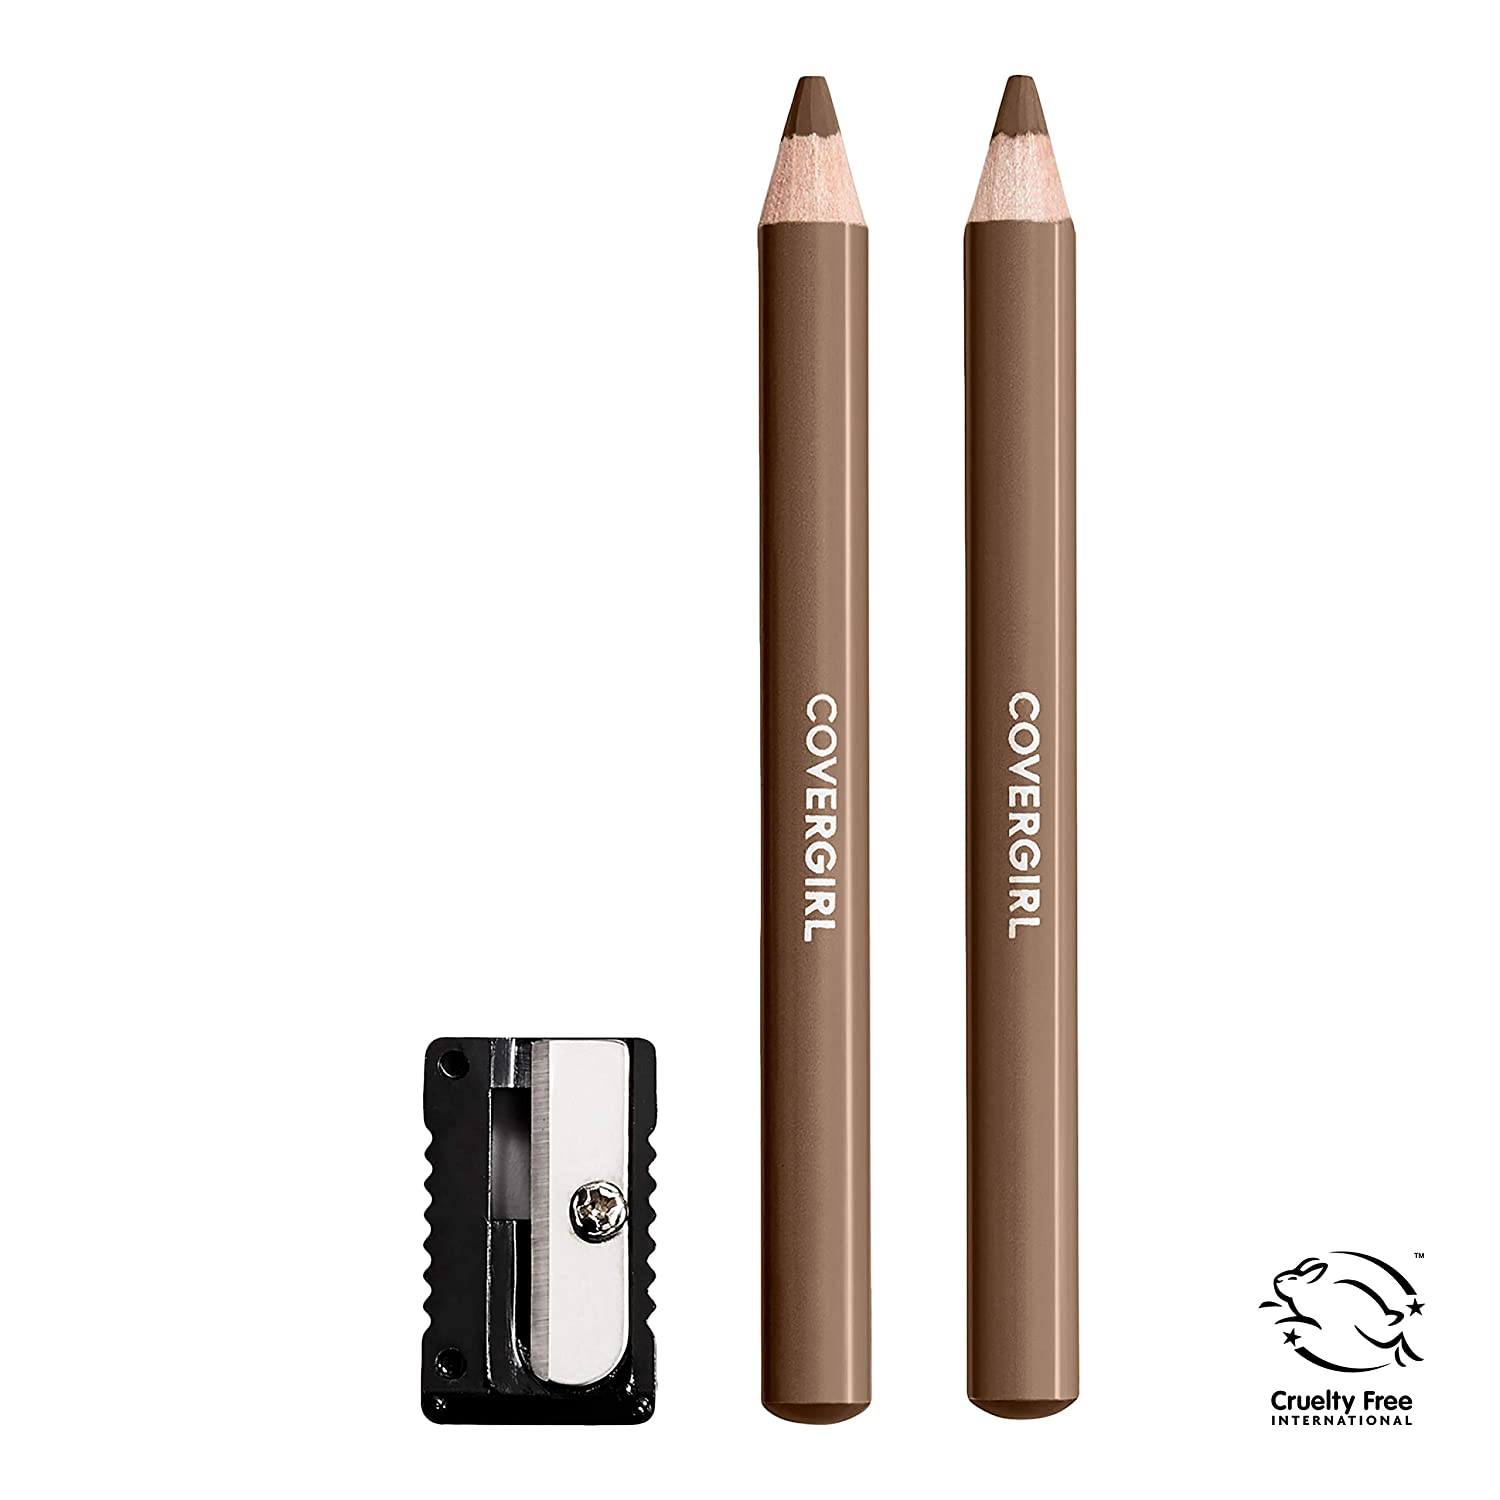 COVERGIRL BROW & EYE MAKERS BROW SHAPER & EYELINER #510 SOFT BROWN B0016MQW3A